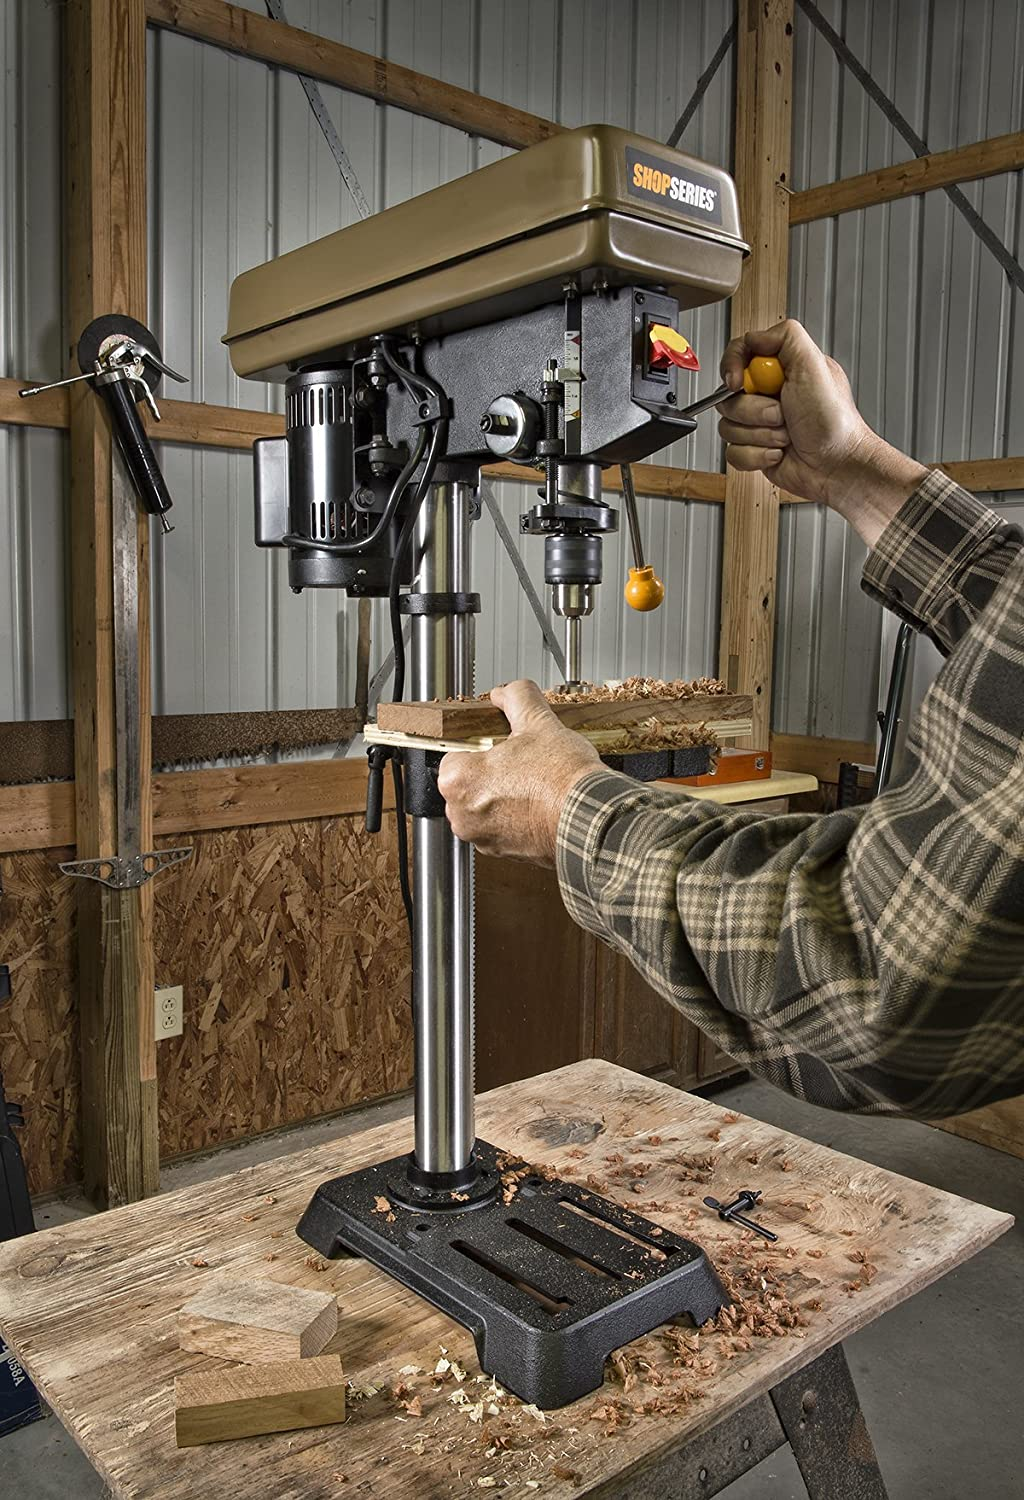 ShopSeries RK7033 6.2-Amp 10 Drill Press Rockwell